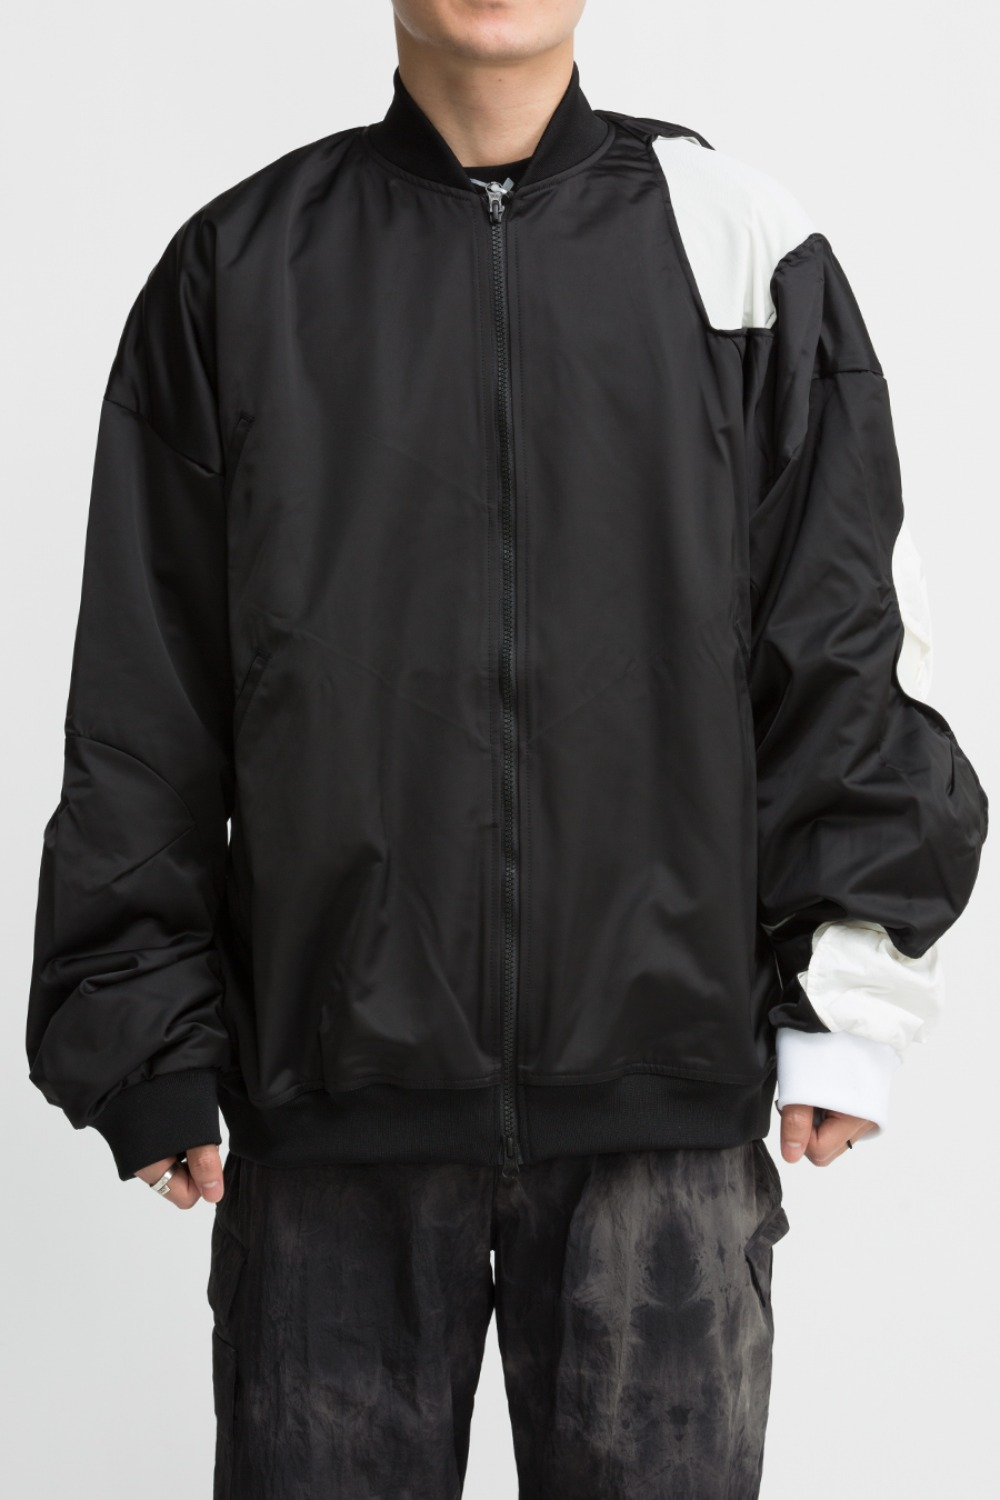 3.1 JACKET CENTER BLACK/WHITE